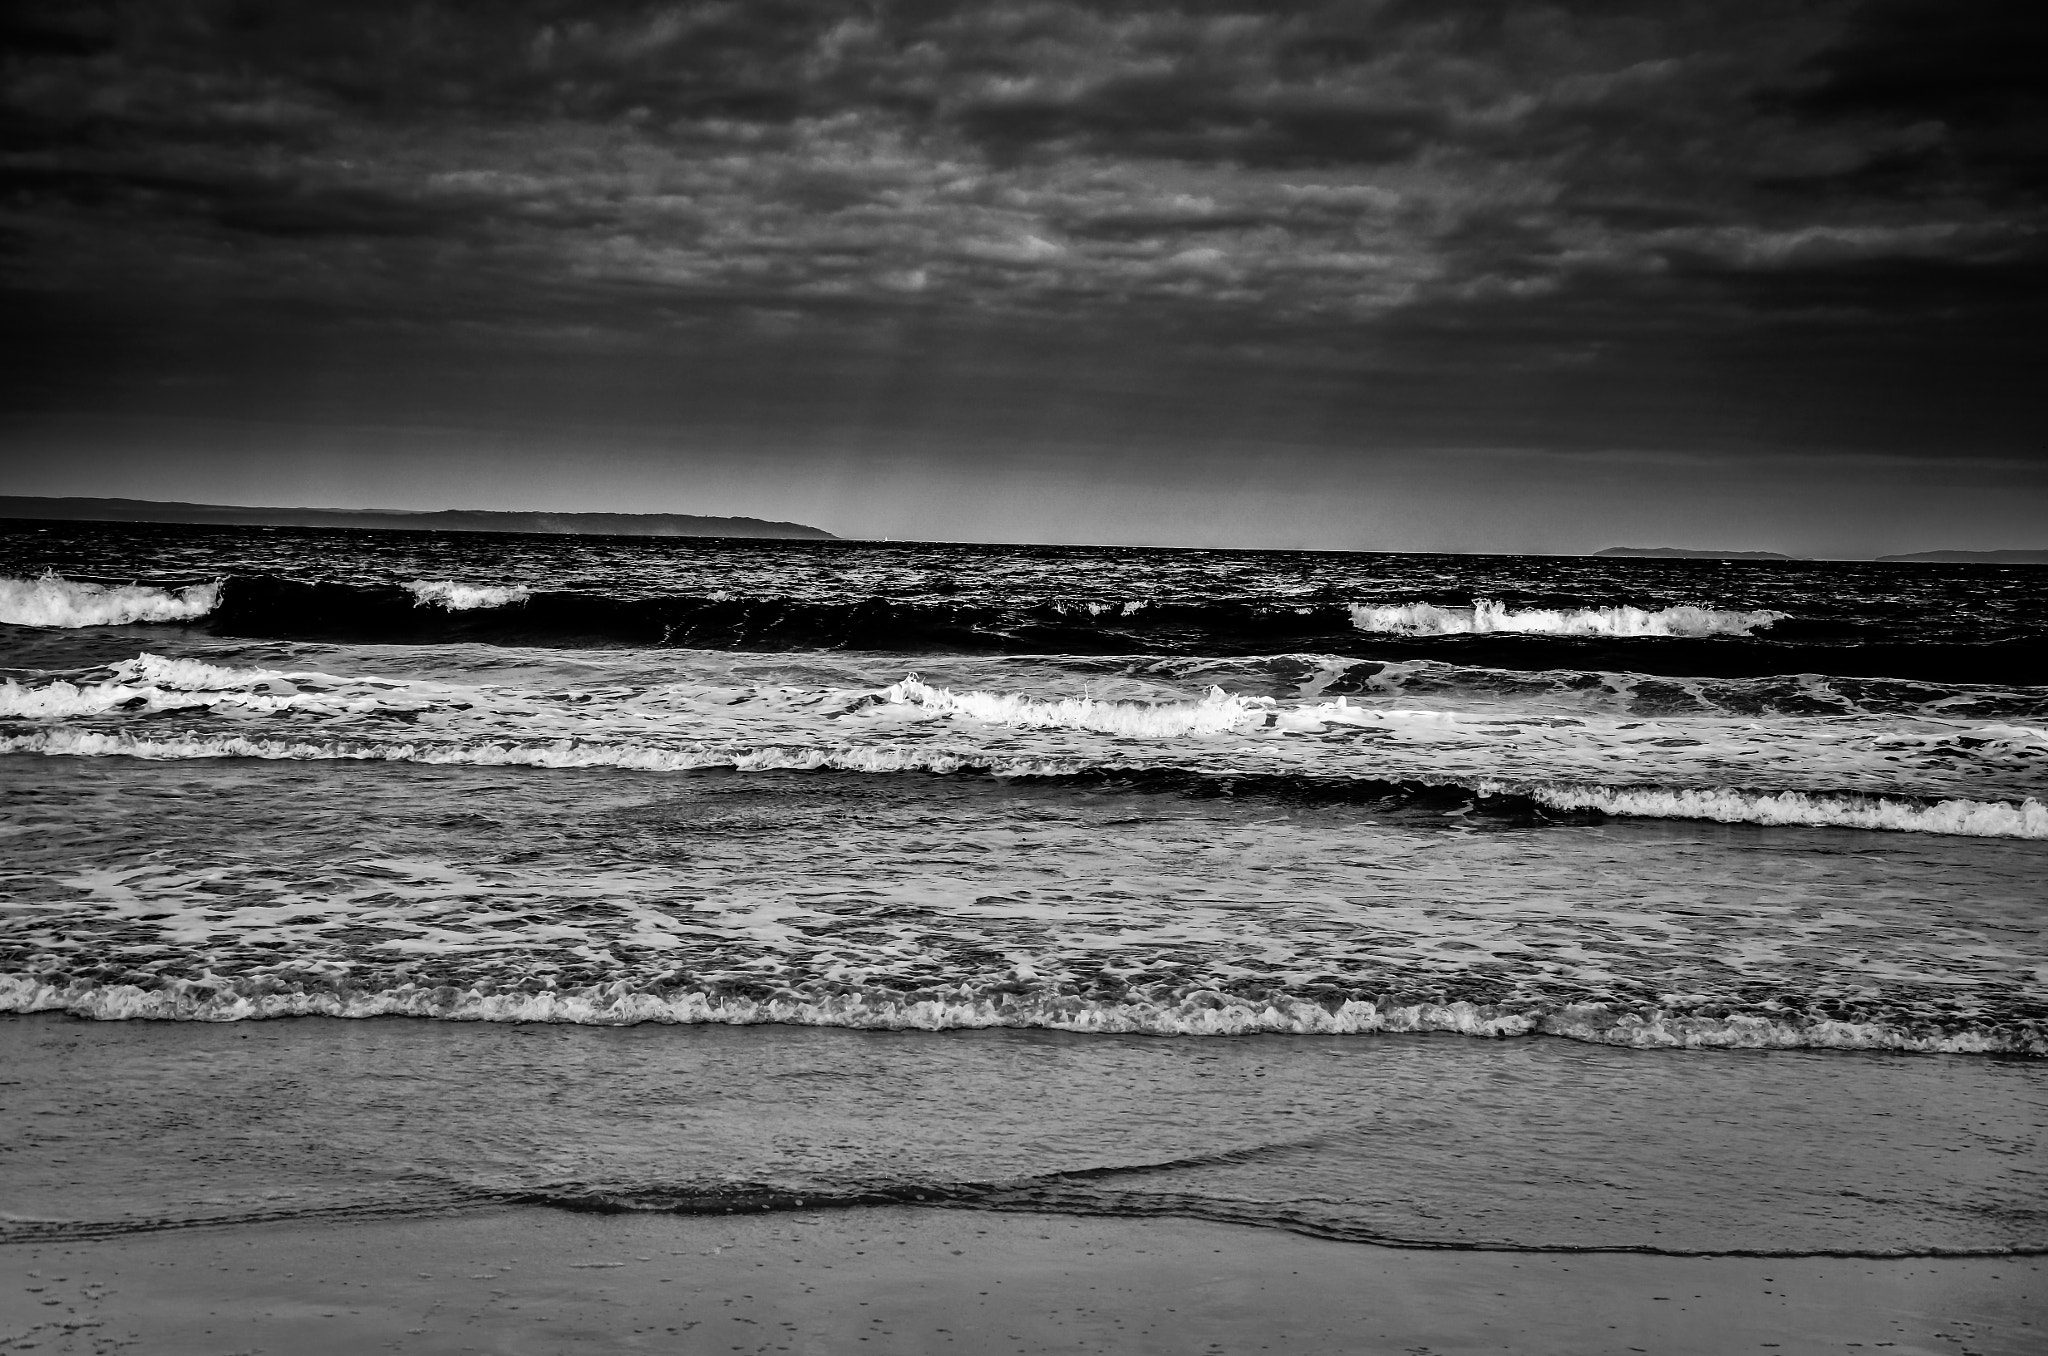 Photograph Waves by Vinoth Kumar on 500px